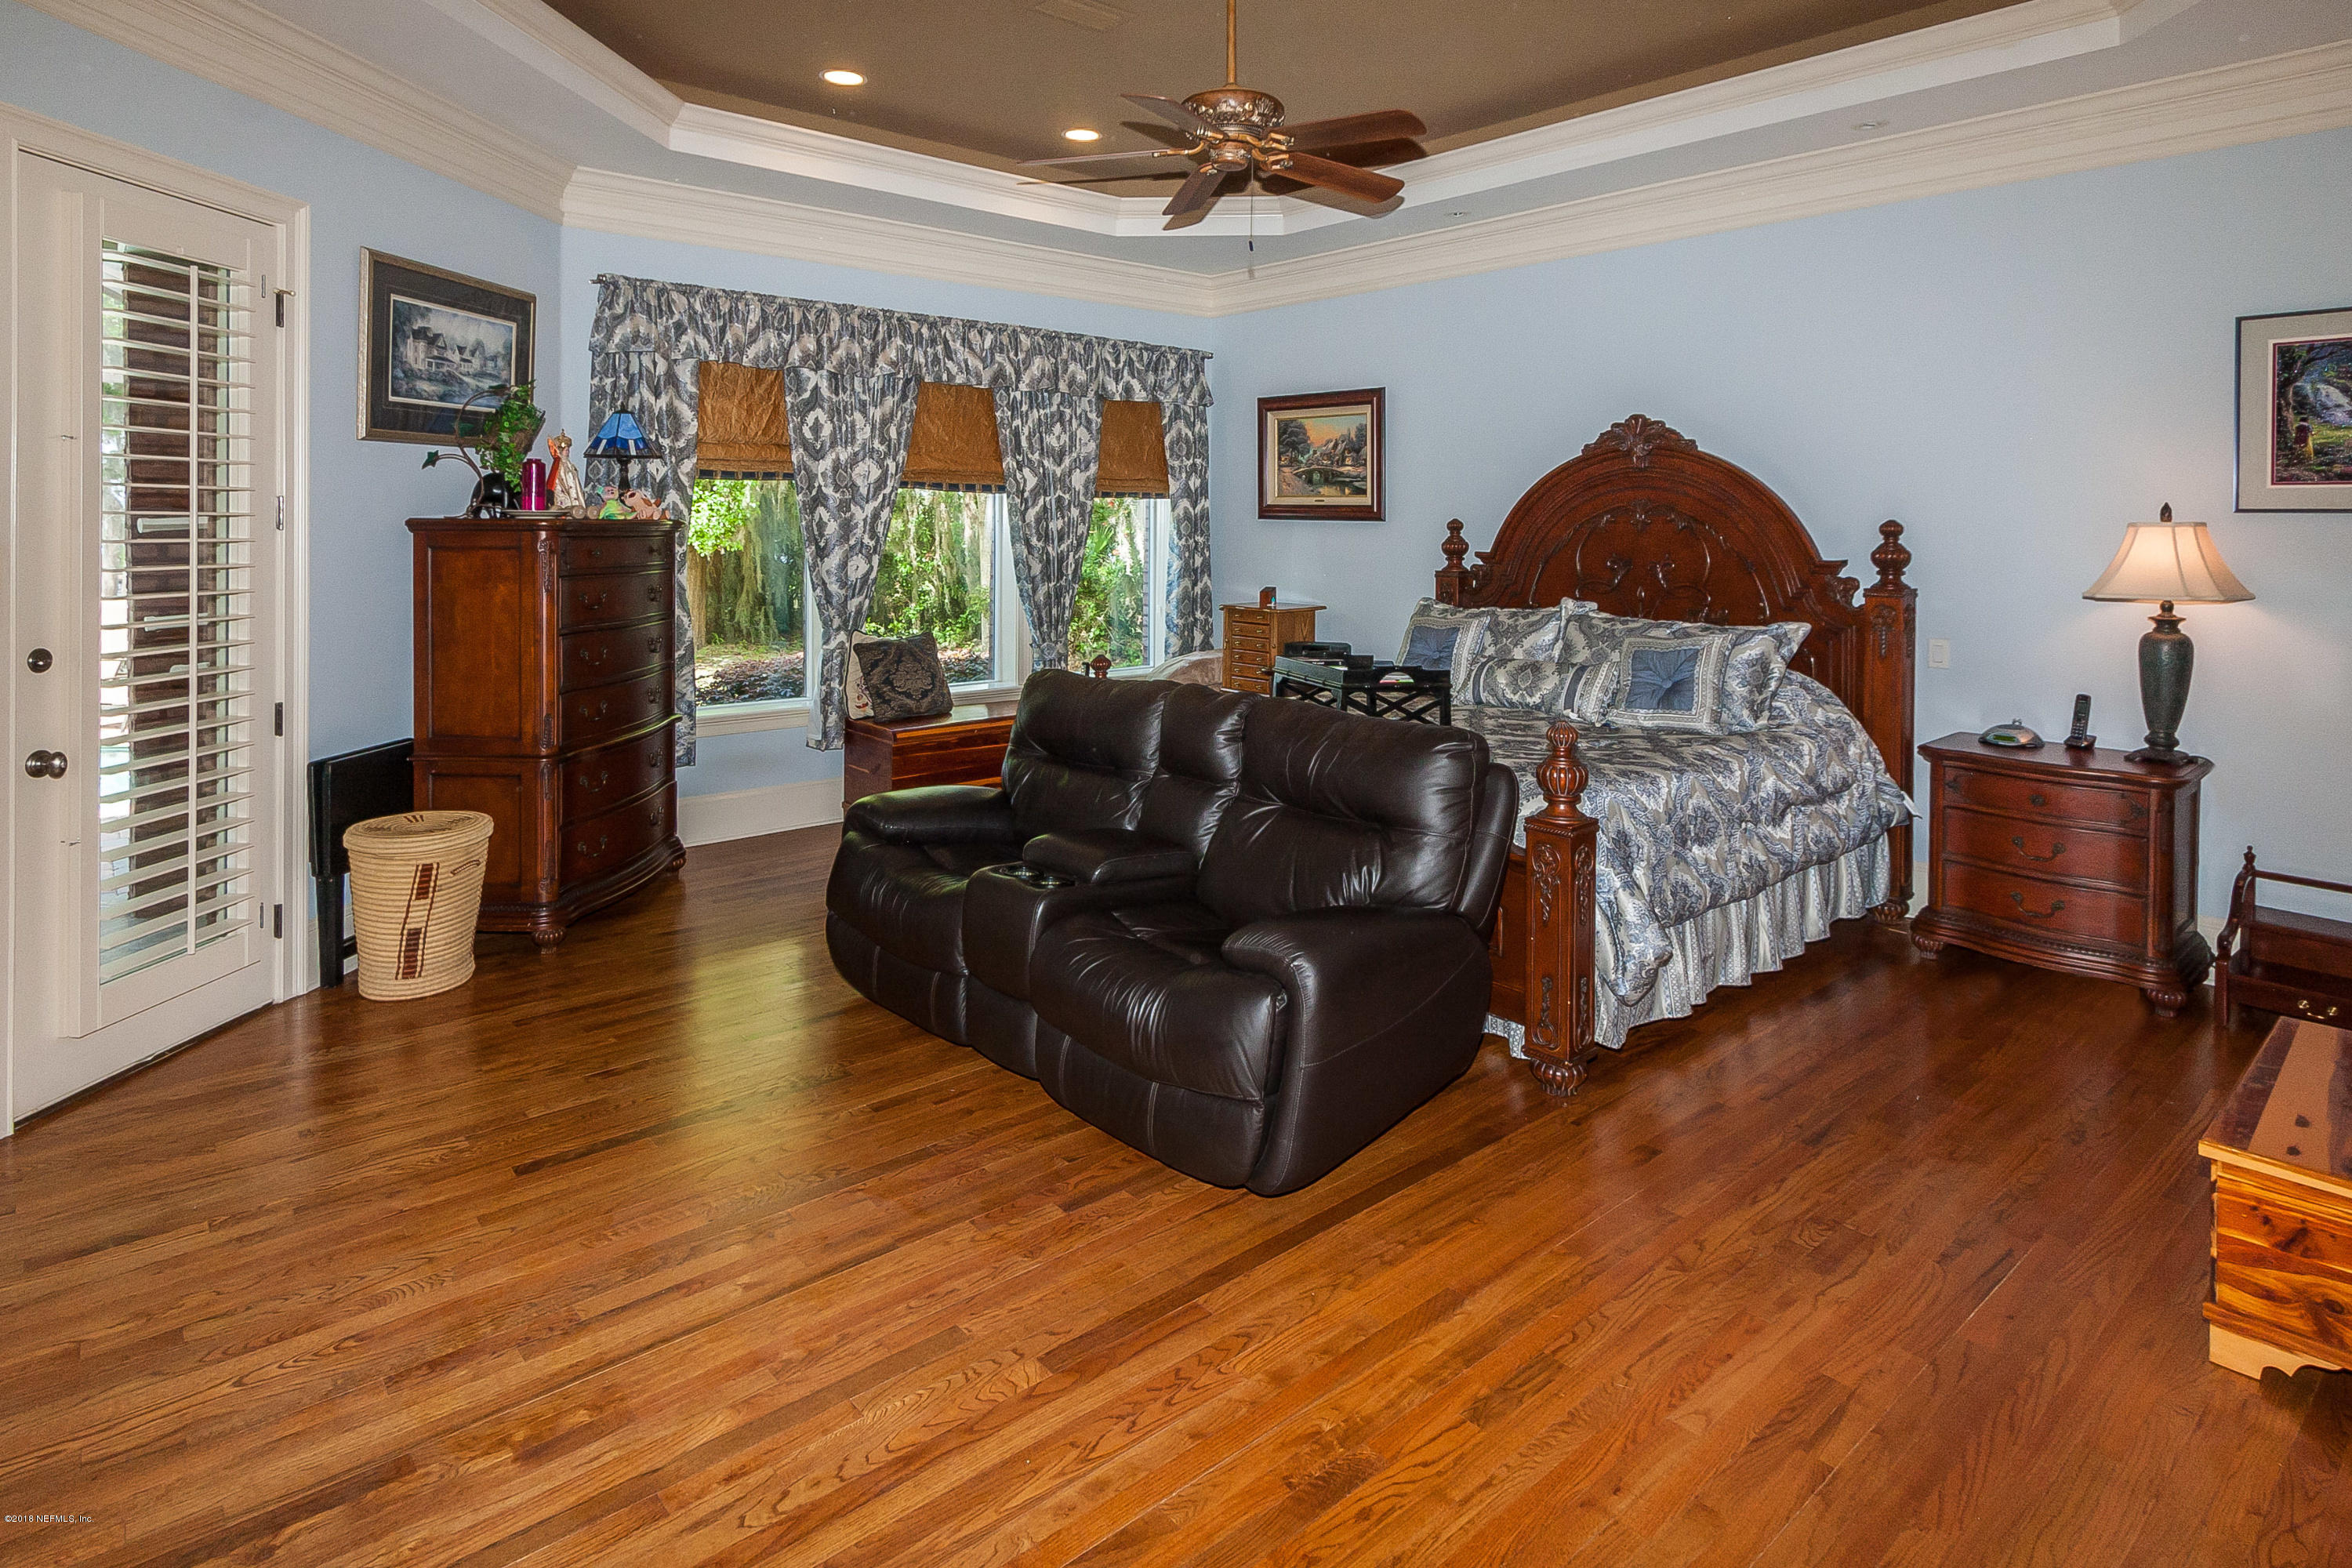 3160 STATE ROAD 13, NORTH, ST JOHNS, FLORIDA 32259, 5 Bedrooms Bedrooms, ,5 BathroomsBathrooms,Residential - single family,For sale,STATE ROAD 13, NORTH,929036